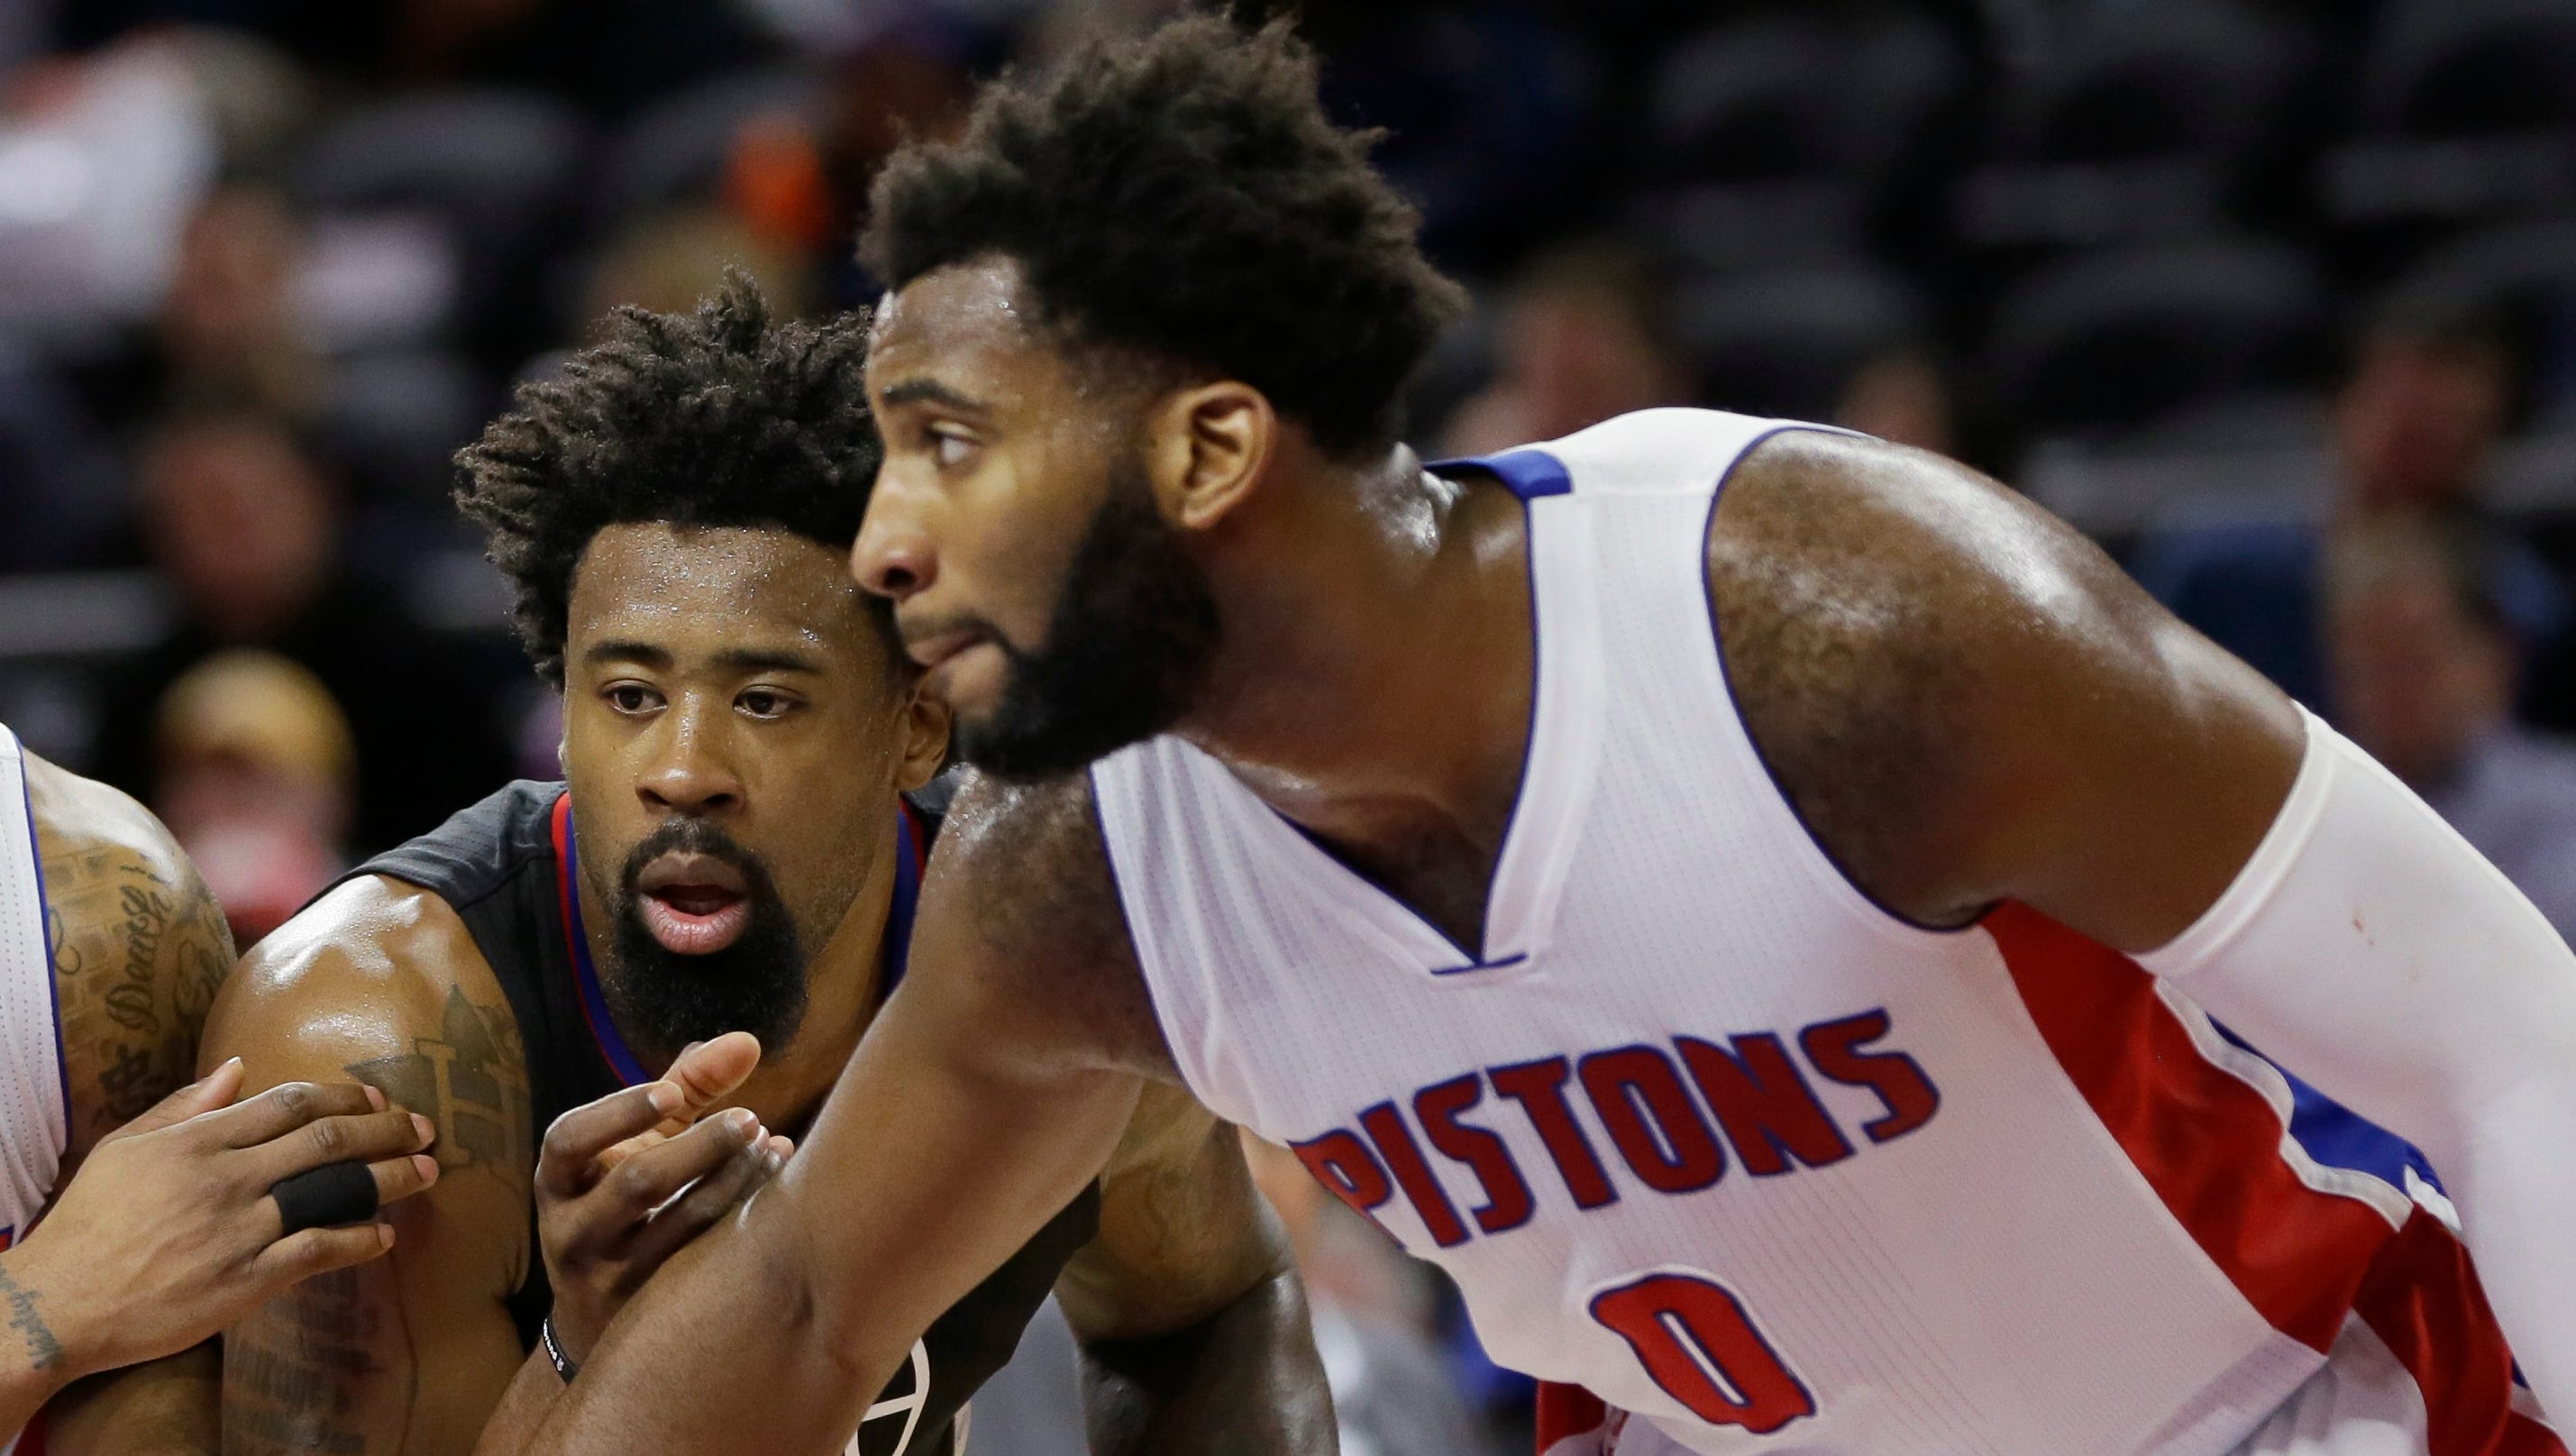 The Nets need Andre Drummond and cannot rely on DeAndre Jordan